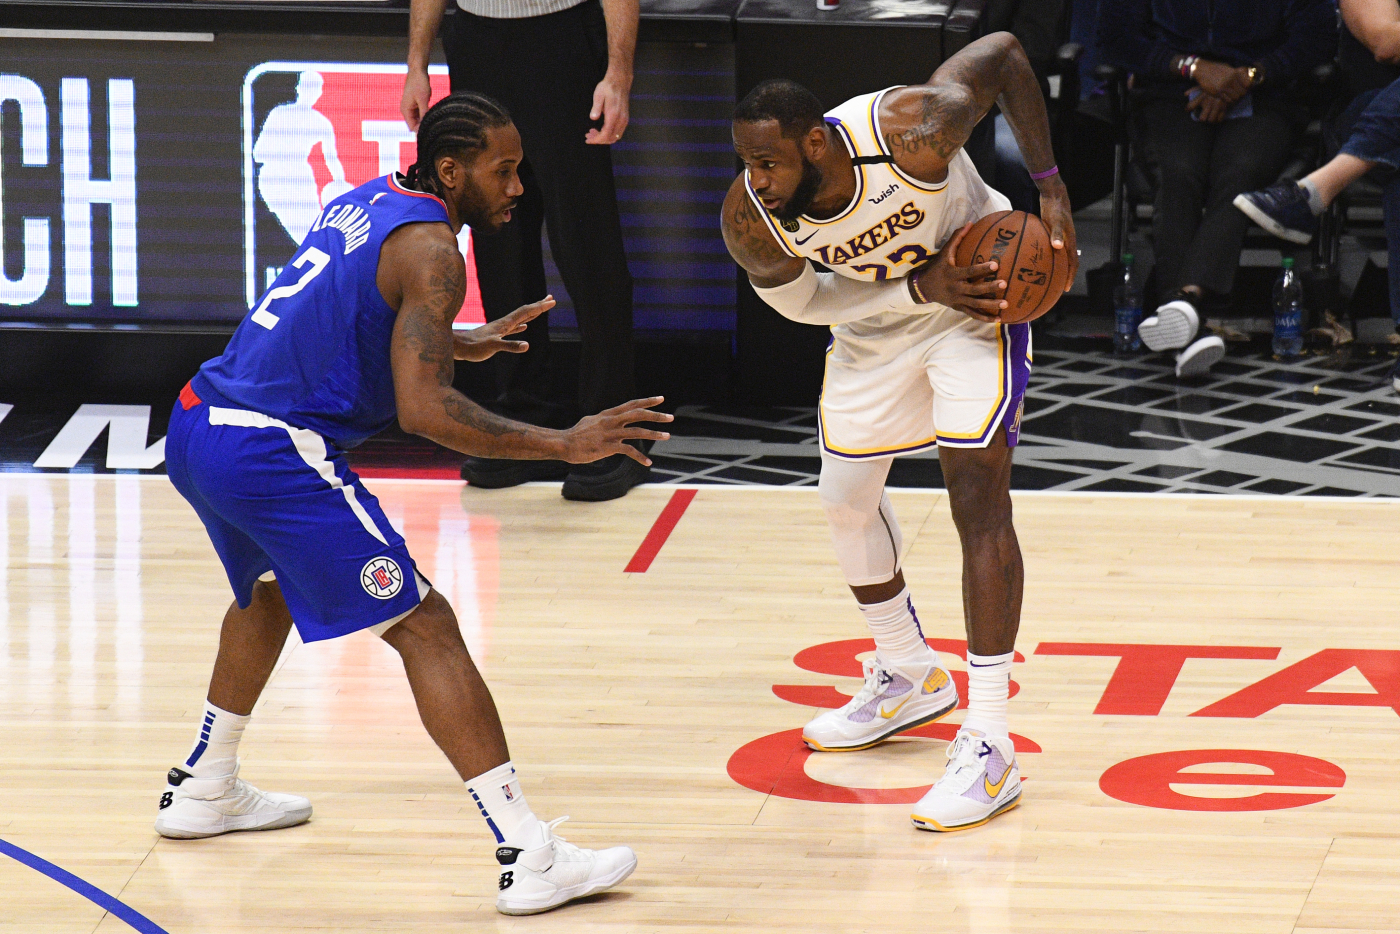 The LA Lakers proved to be the better team over the LA Clippers last season. Now, they are taking the Clippers' star, Montrezl Harrell.